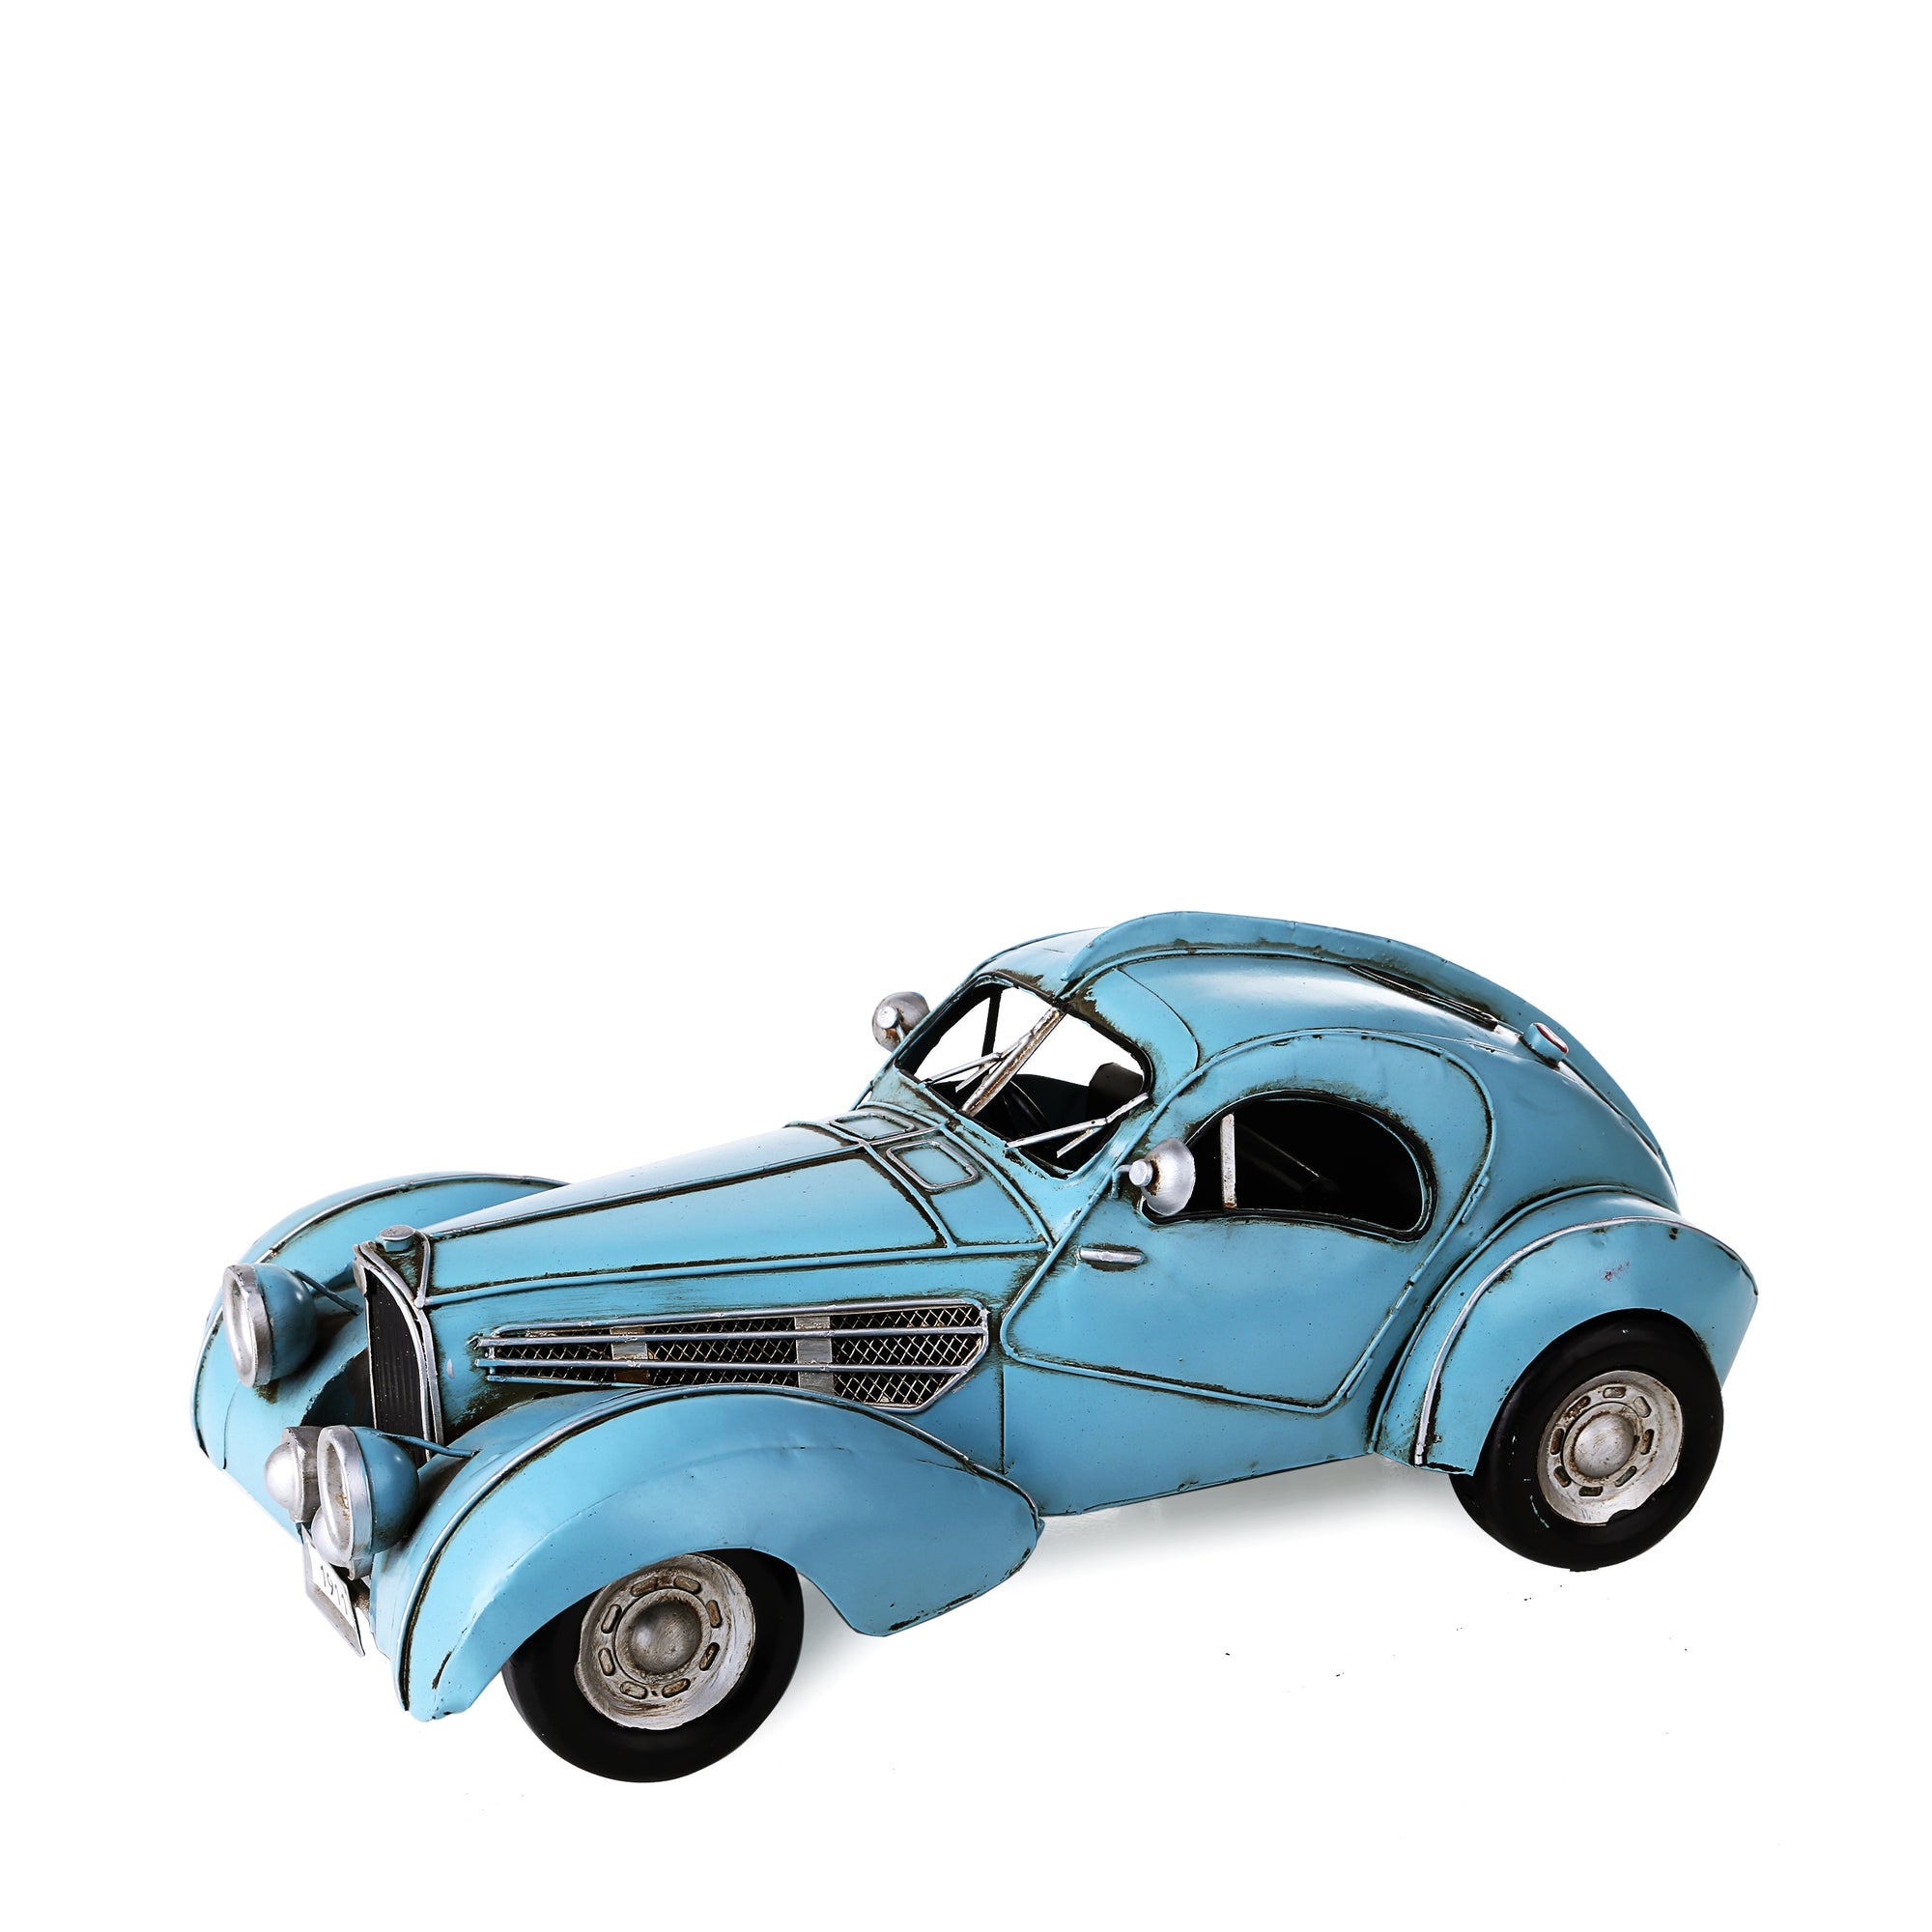 Bugatti type 57SC Atlantic Blue Model